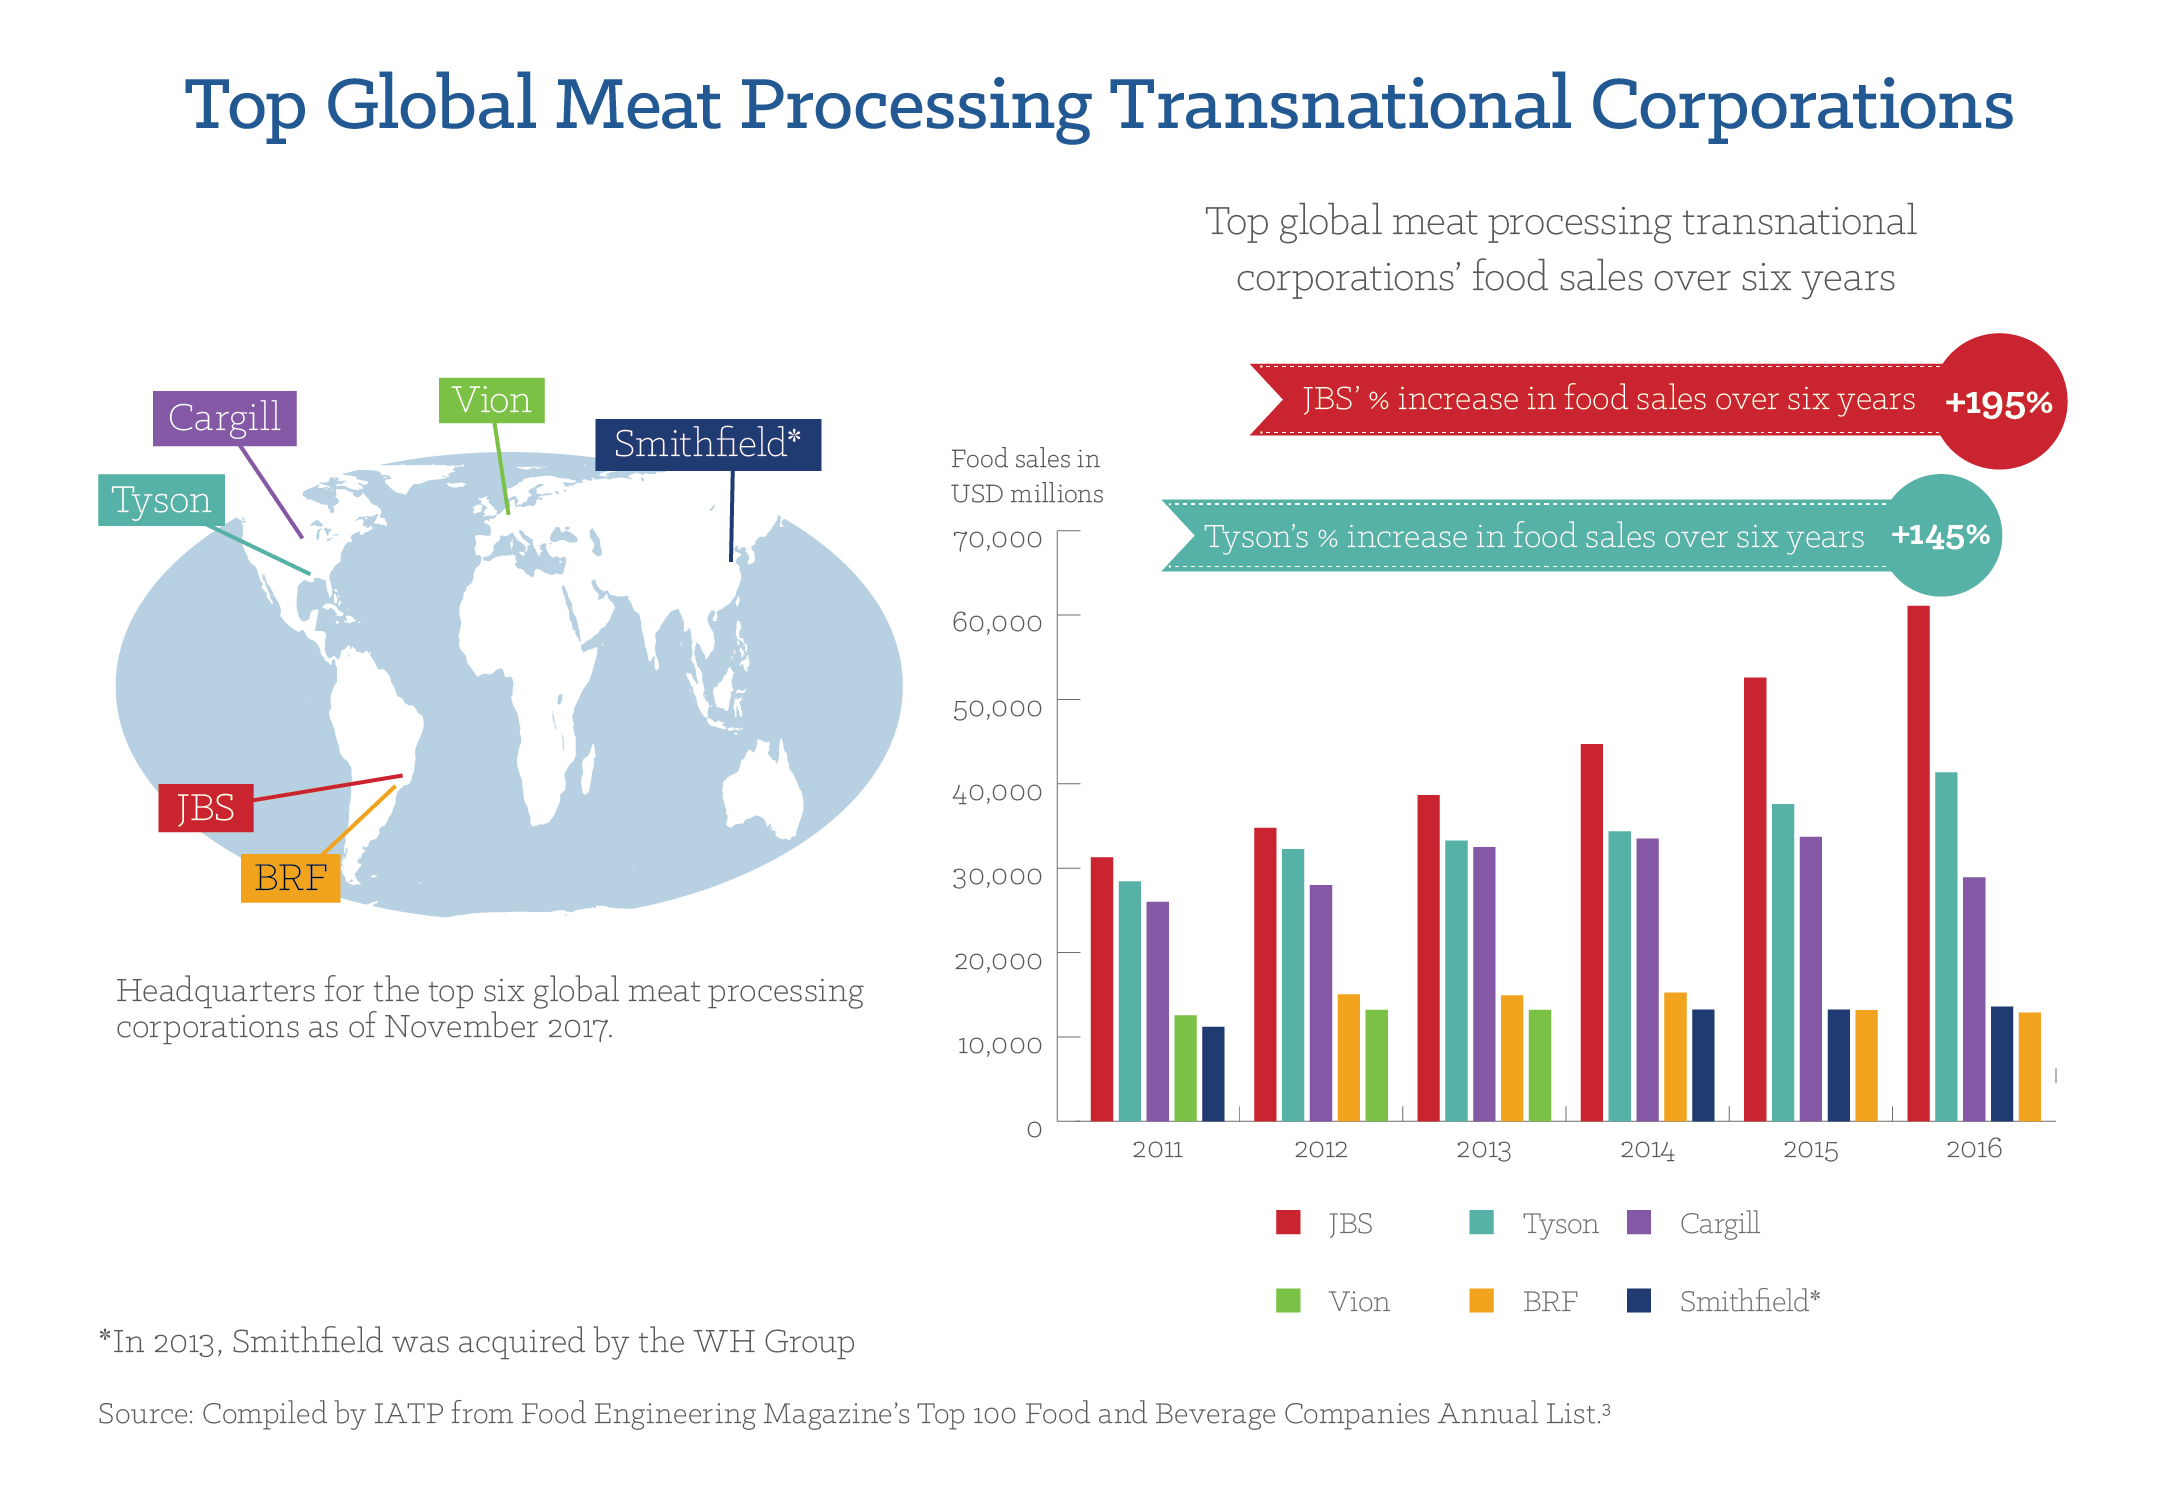 Top Global Meat Transnational Corporations